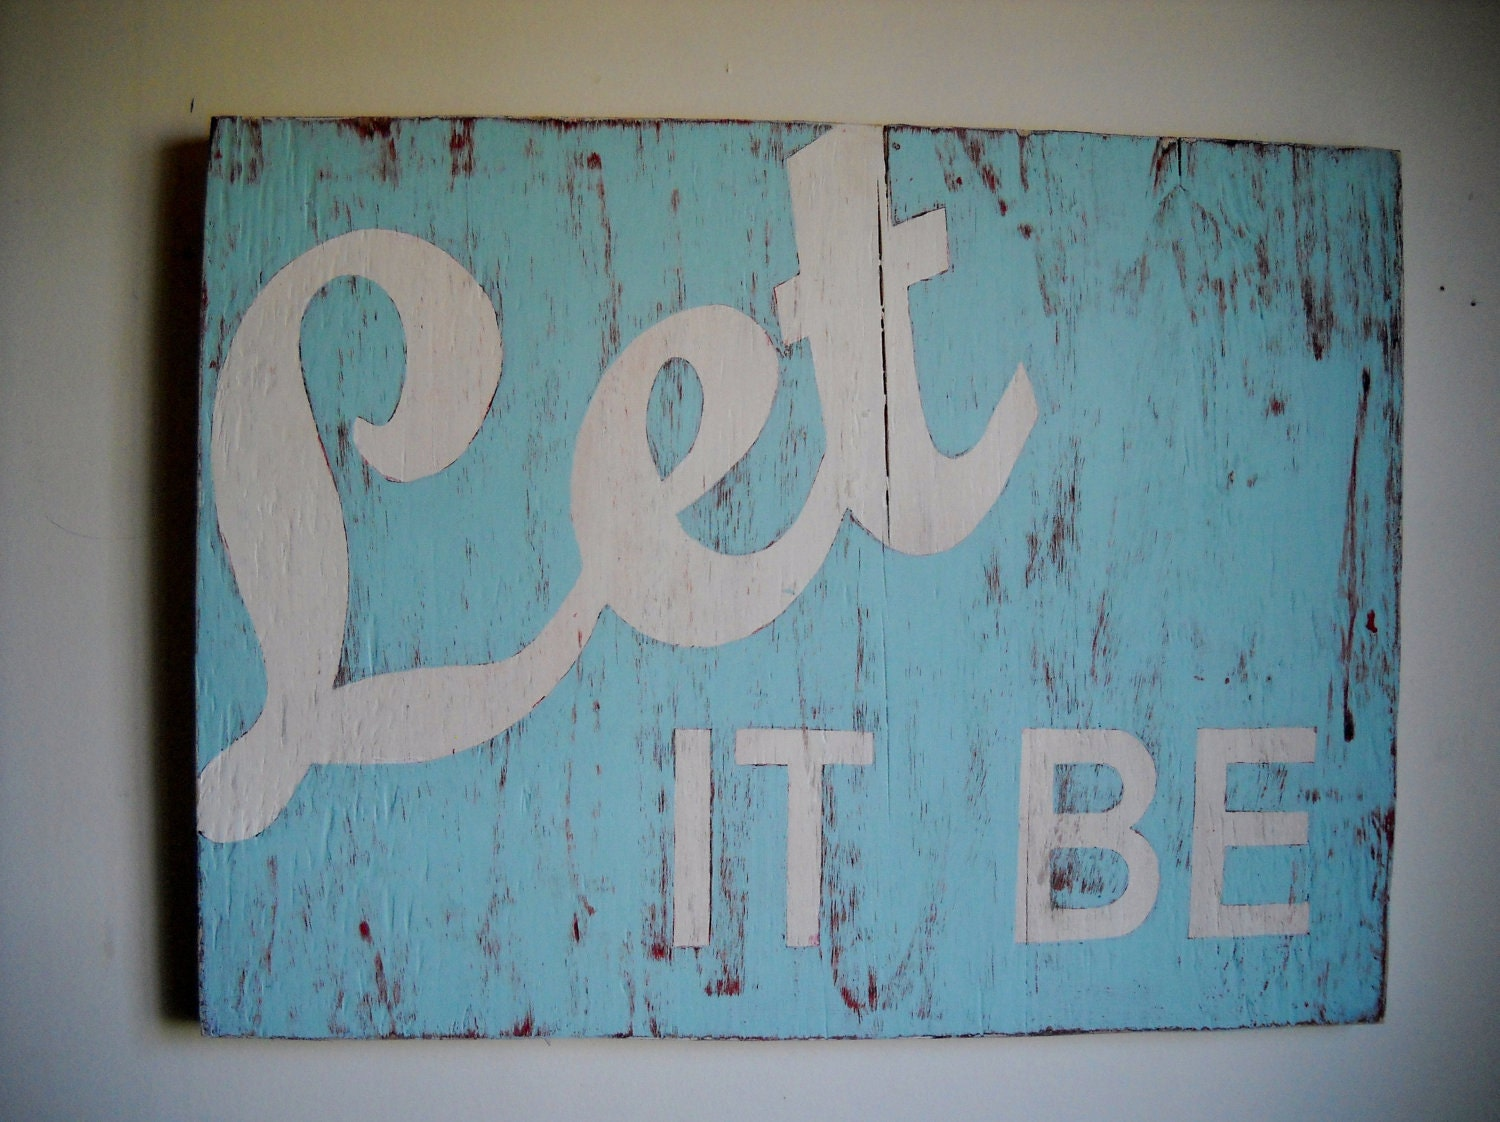 Let It Be vintage inspired sign cottage chic shabby chic urban loft decor